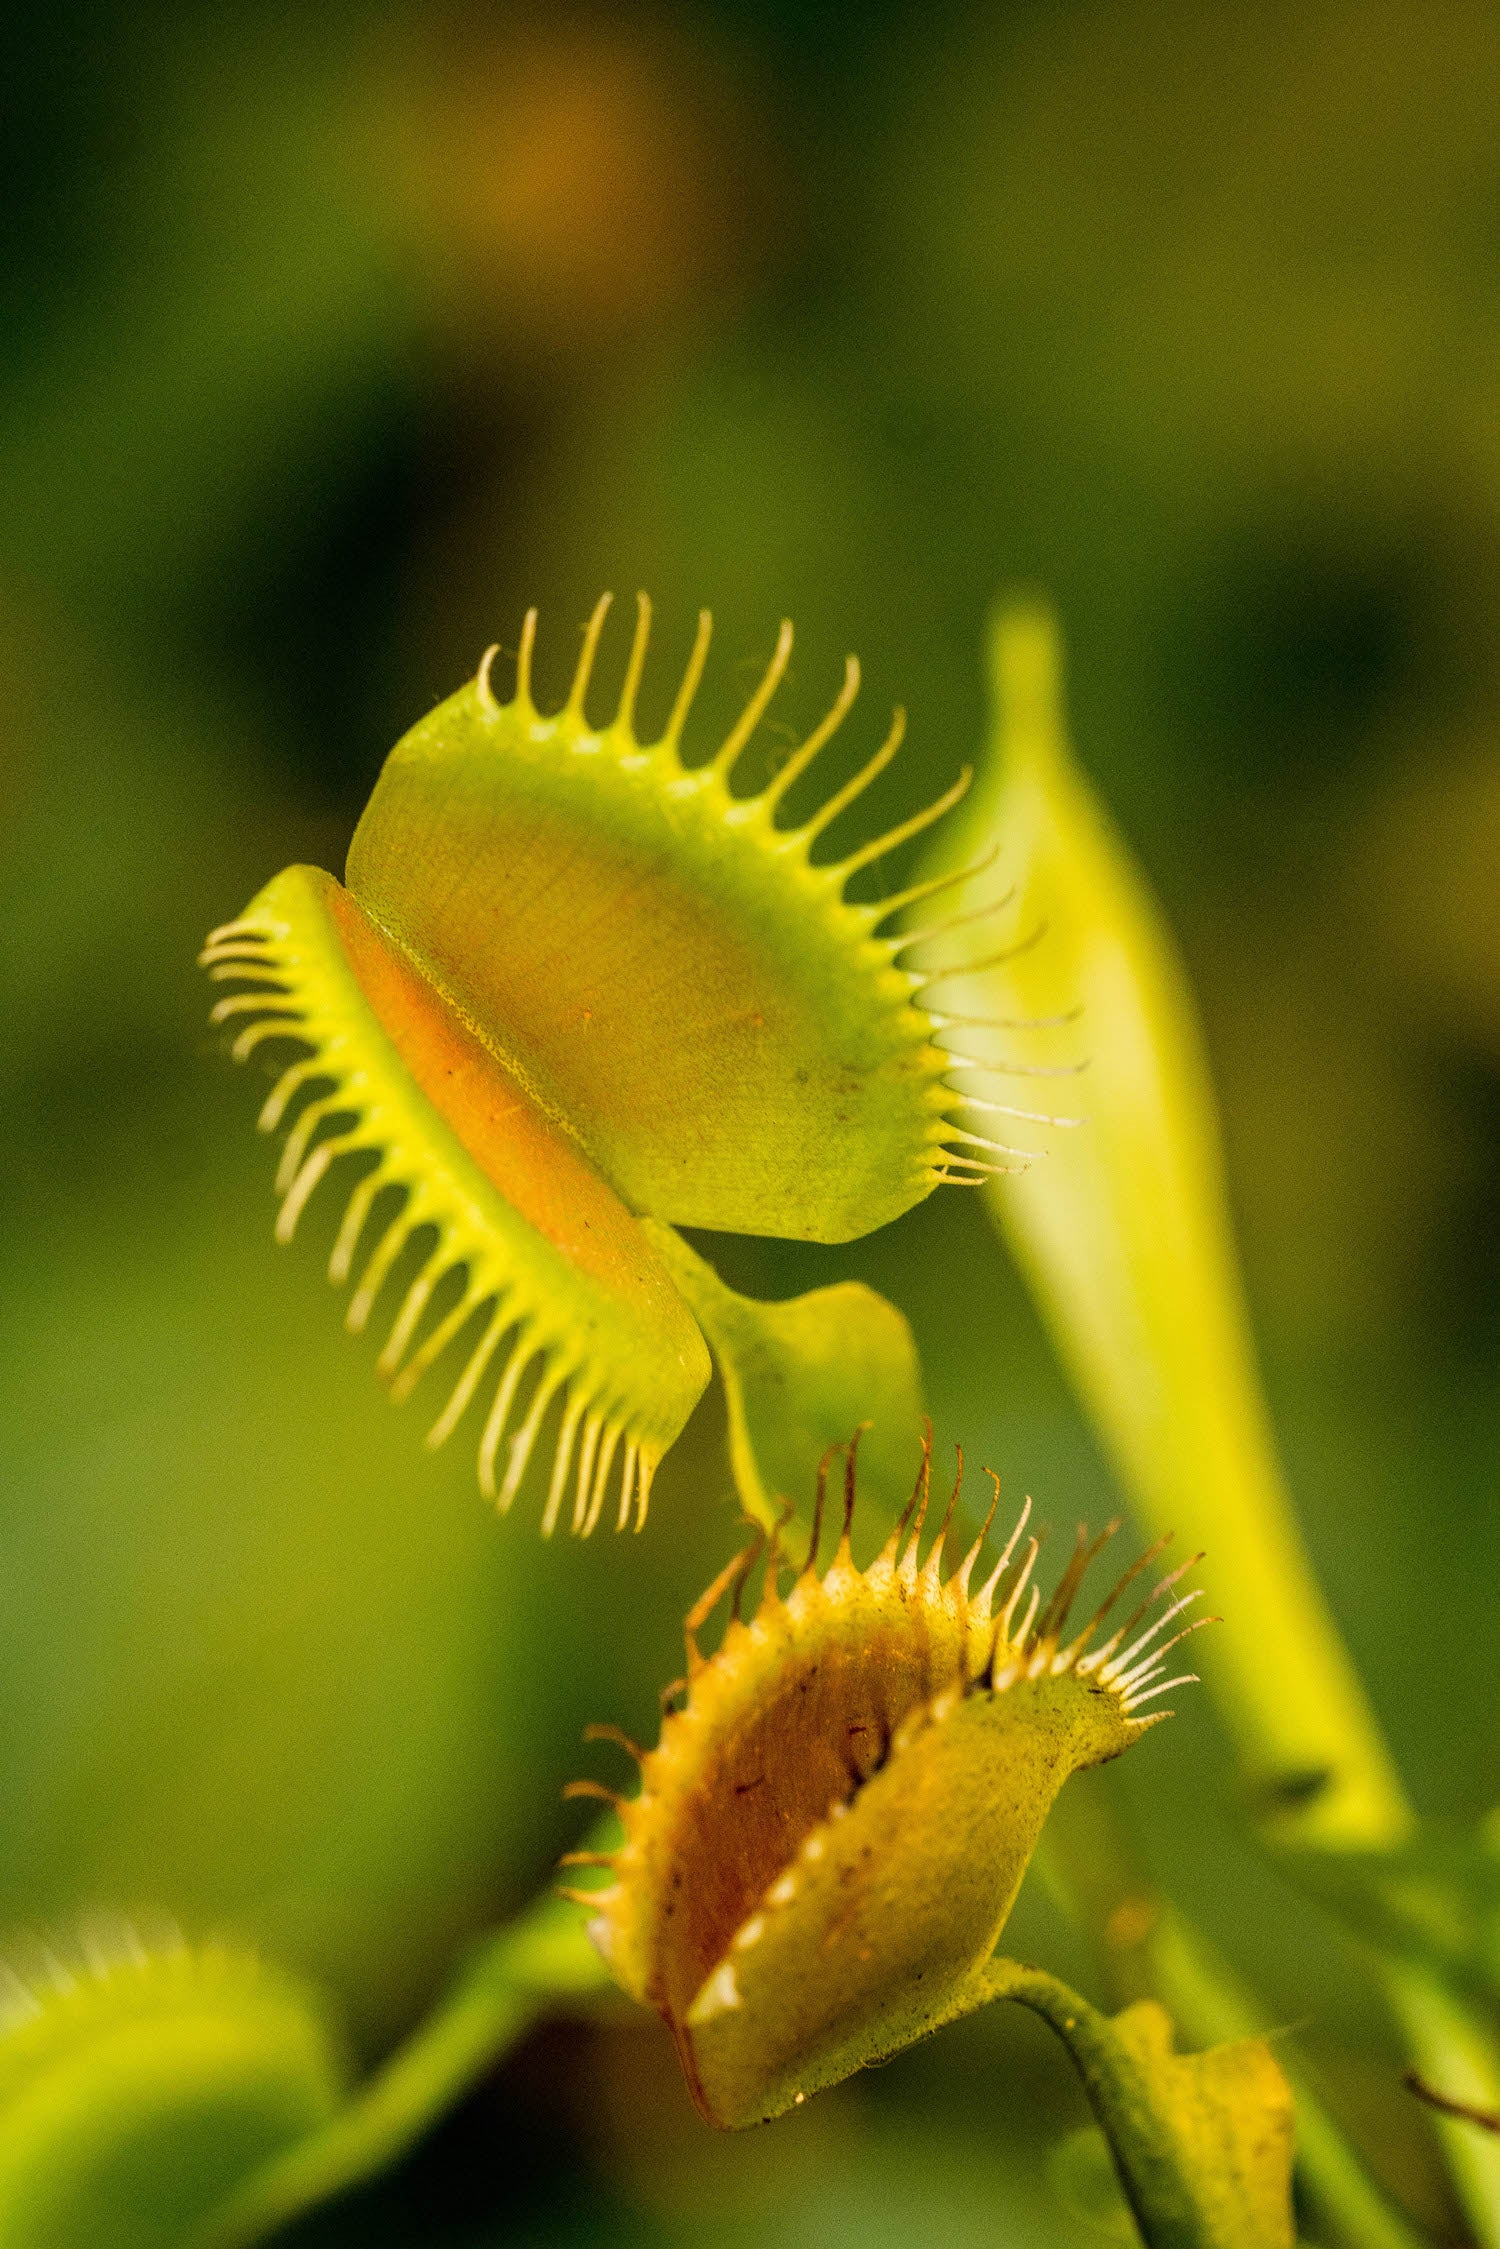 venus flytrap flower essence